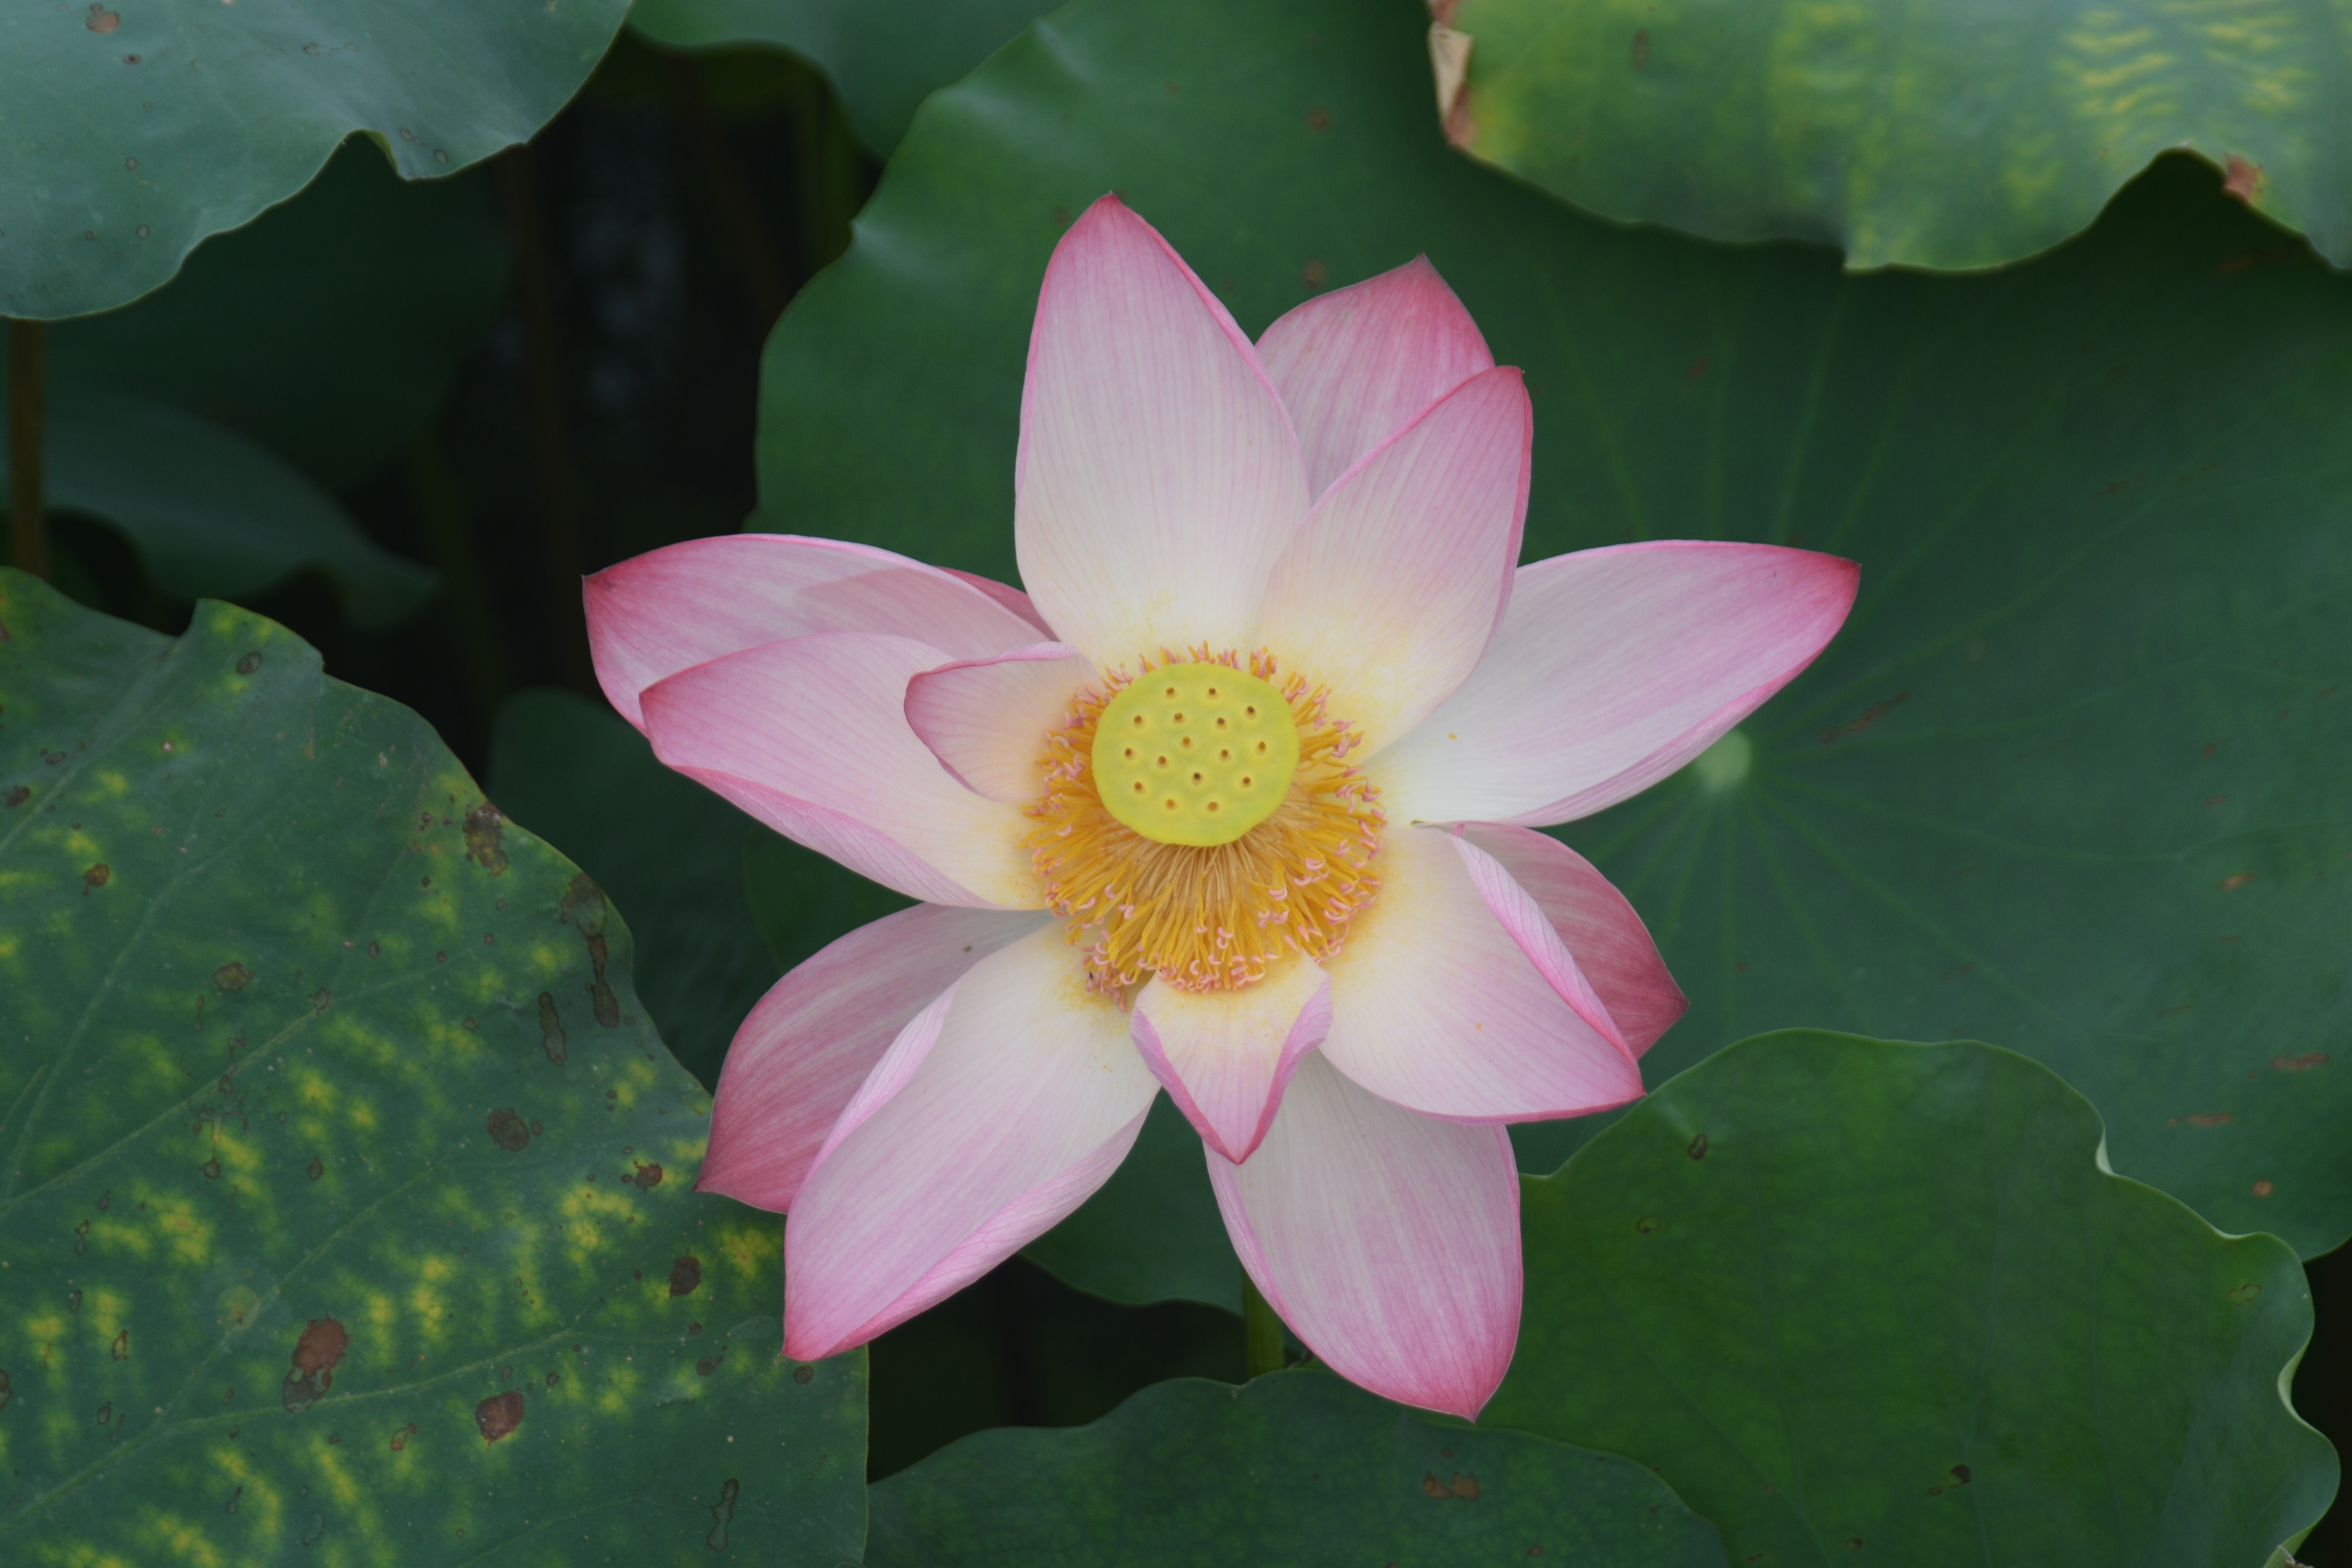 An image of a lovely lotus blossom, West Lake, Hangzhou, China